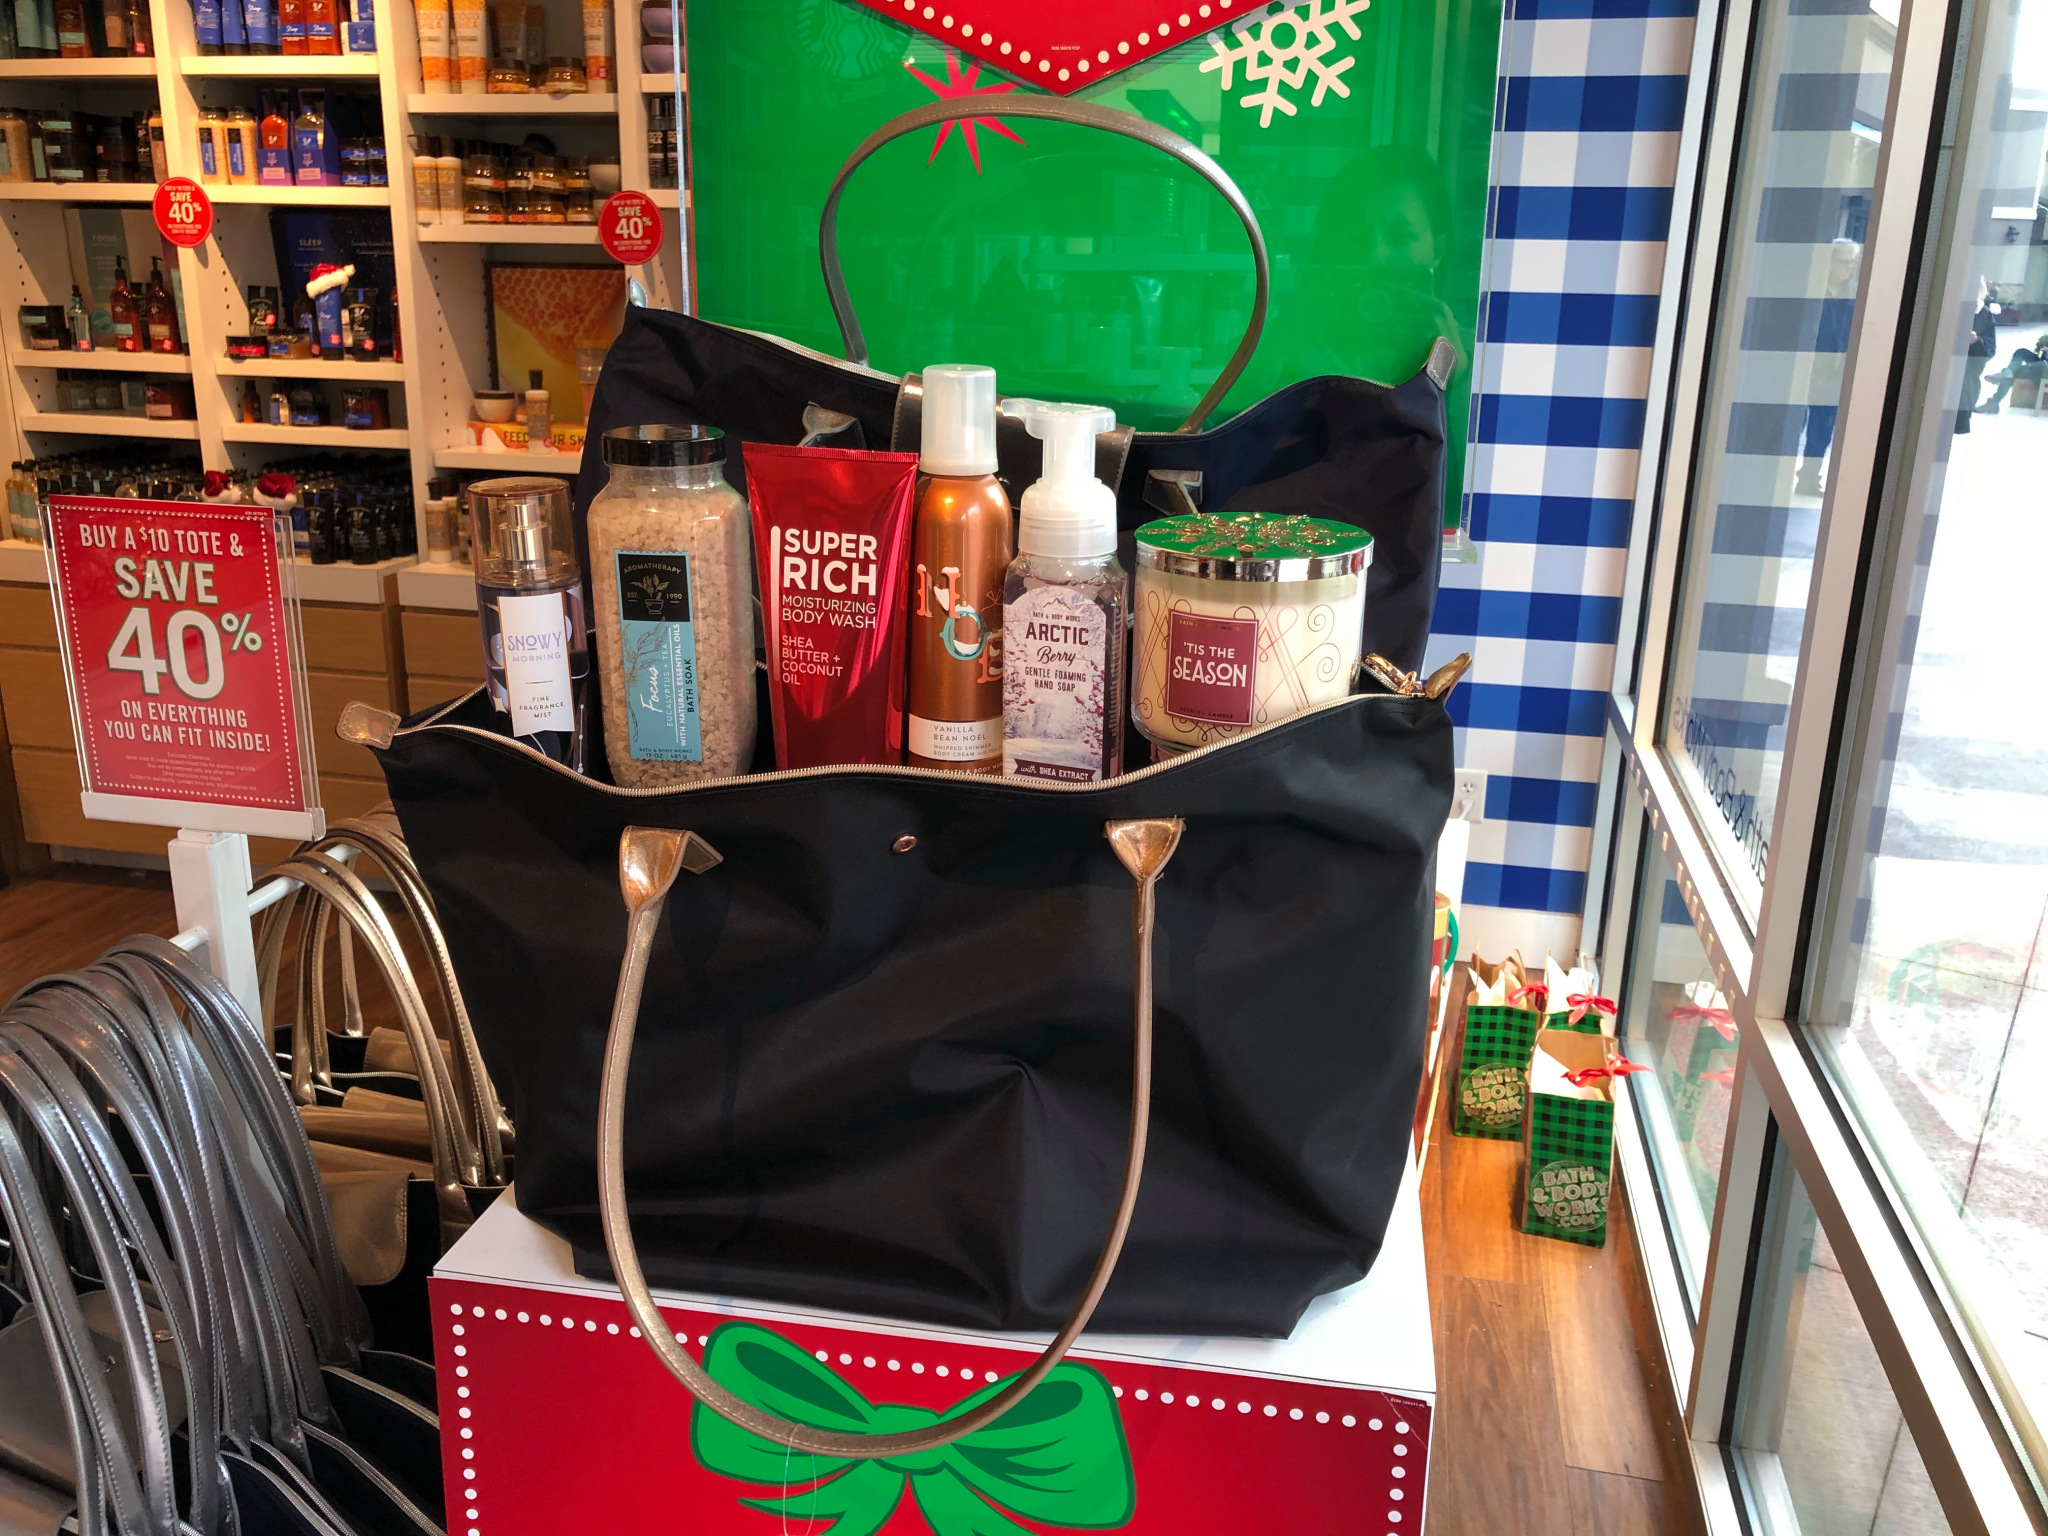 Bath And Body Works Purchase 10 Tote And Get 40 Off